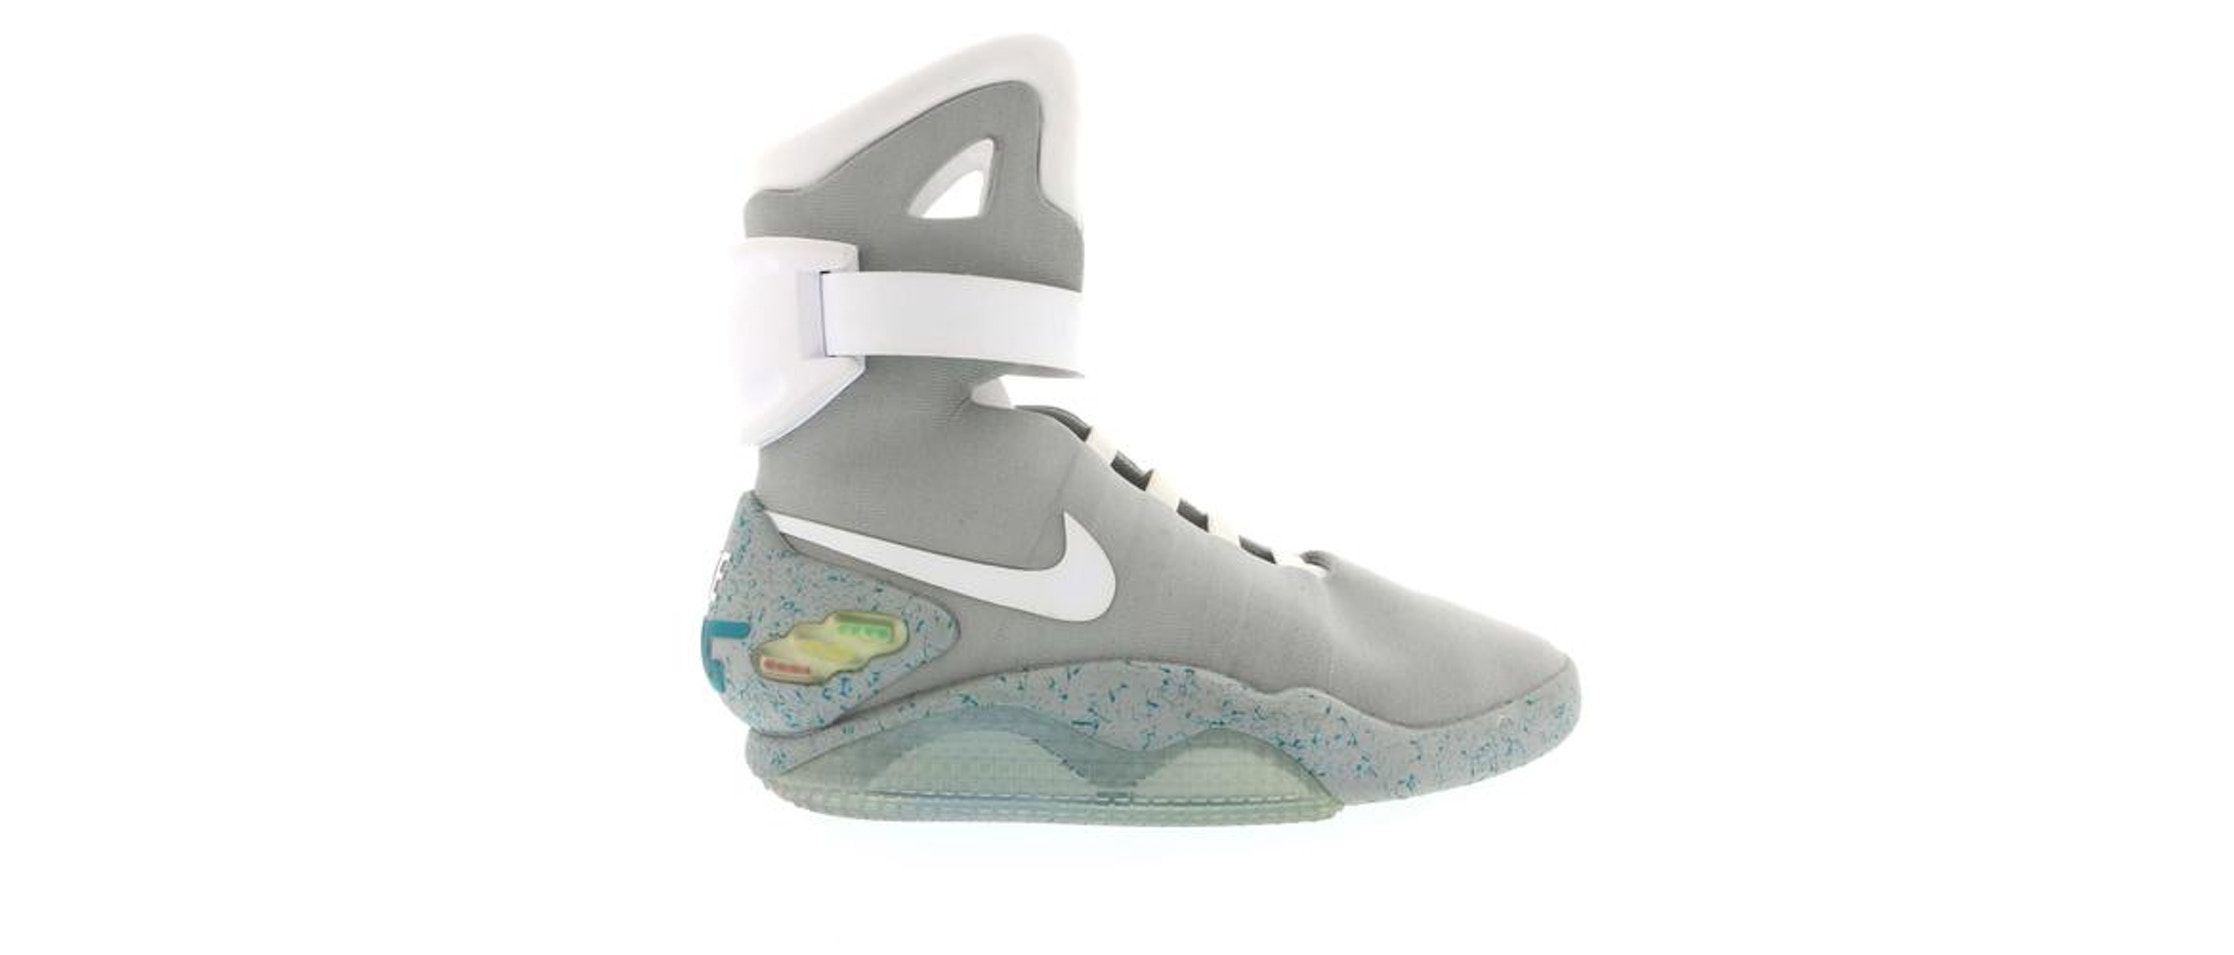 Nike Mag Back To The Future 2011 Nike Mag Expensive Sneakers